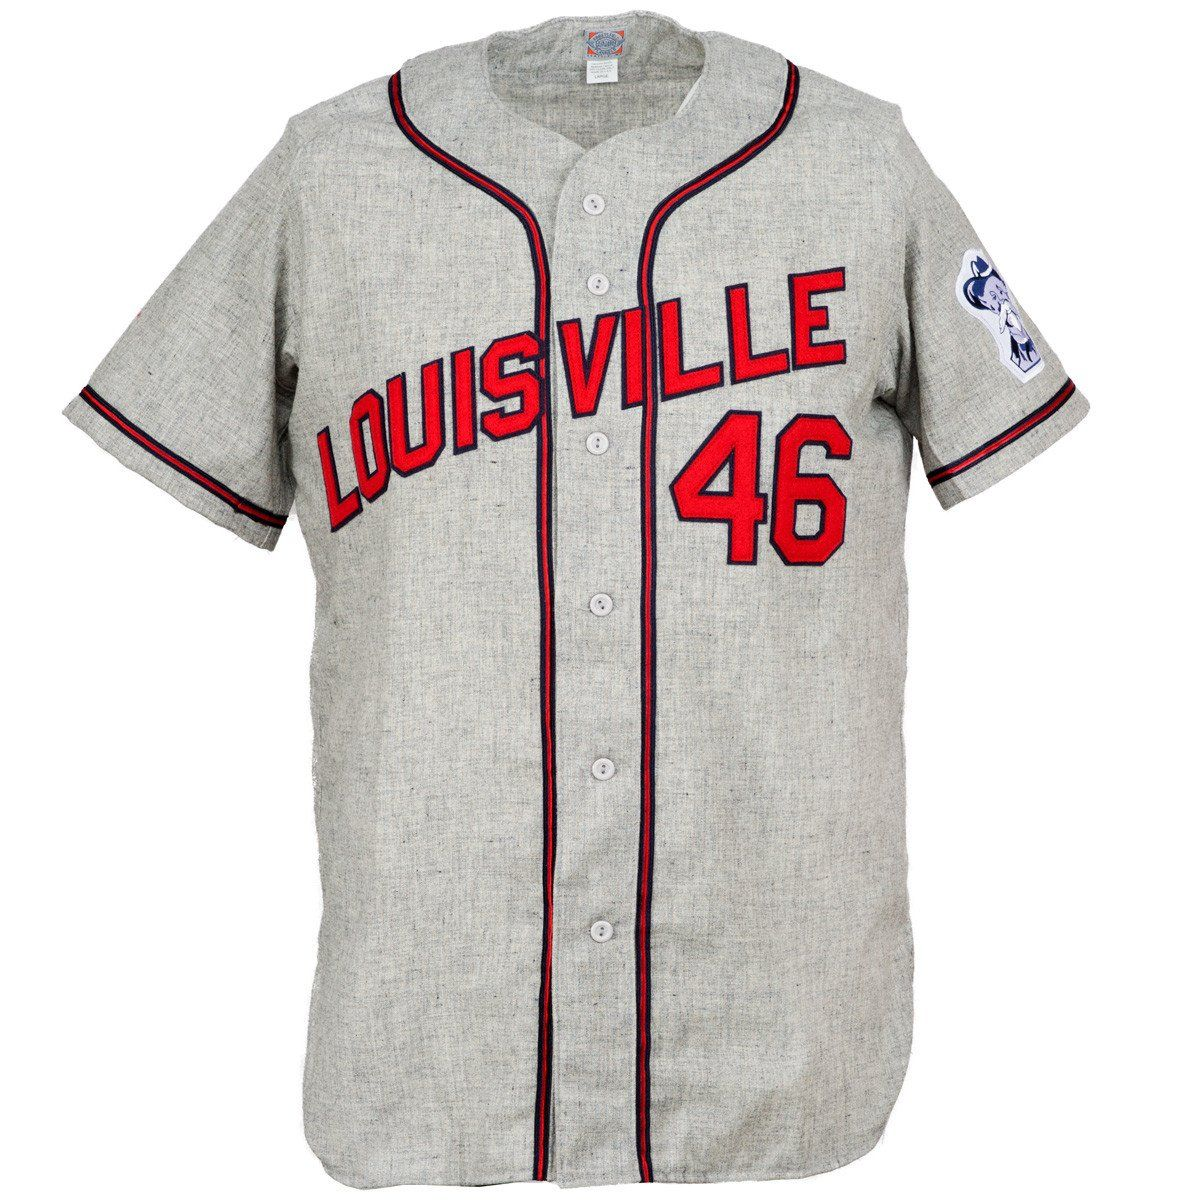 6b058eacb47 History  The Colonels were affiliate with the Boston Red Sox. Product  Details  -